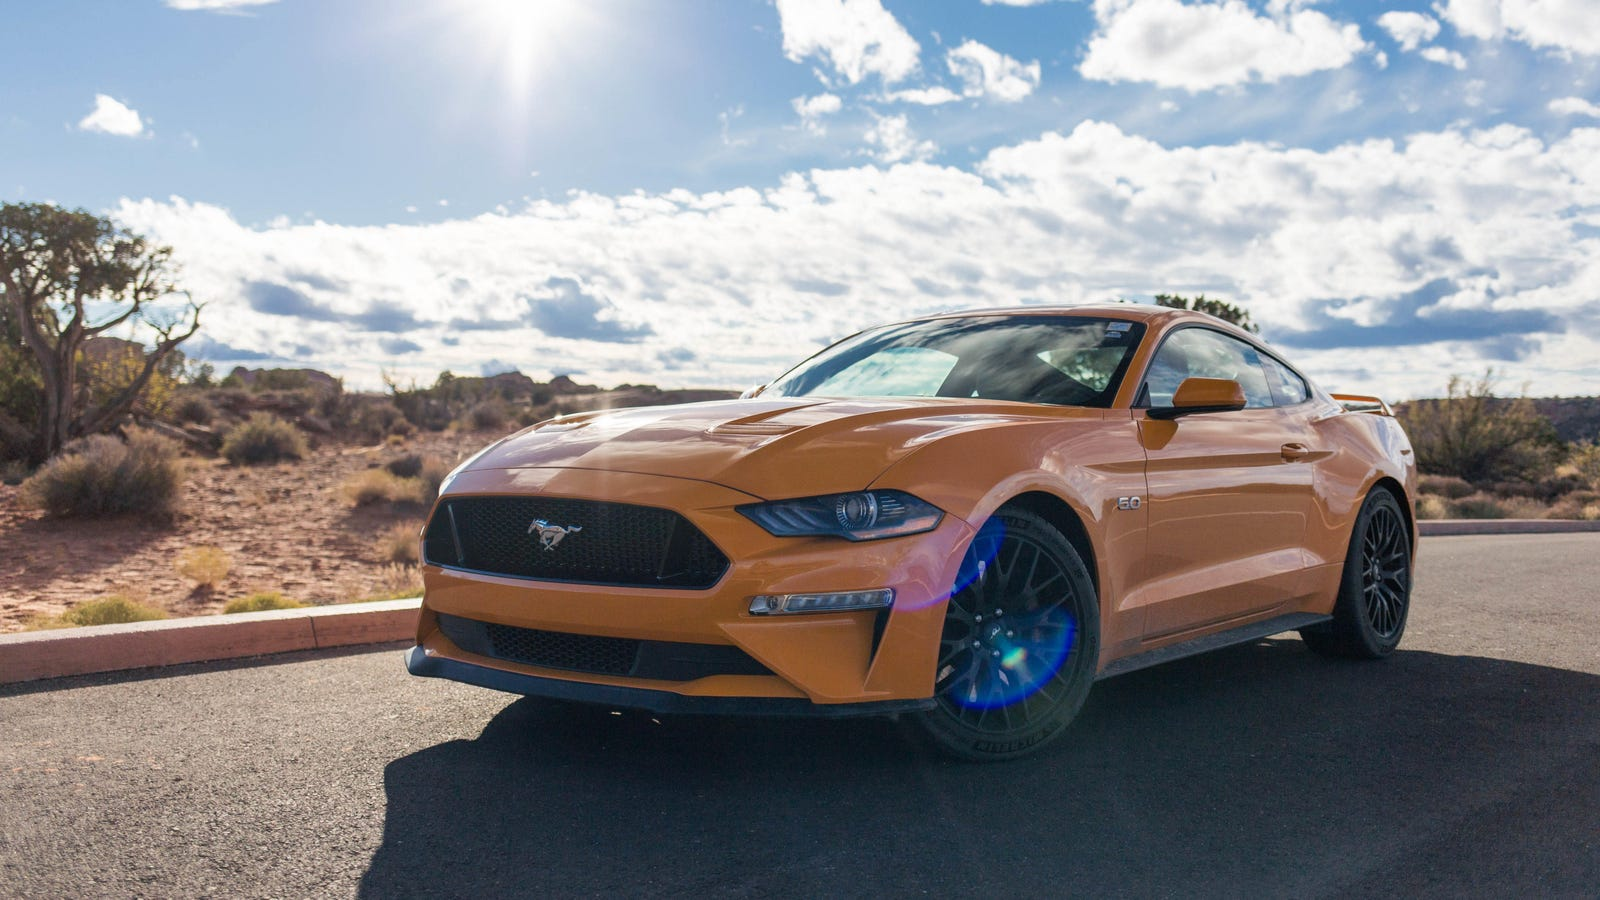 The ford mustang razes competition once more salts the earth other sports cars weep in despair